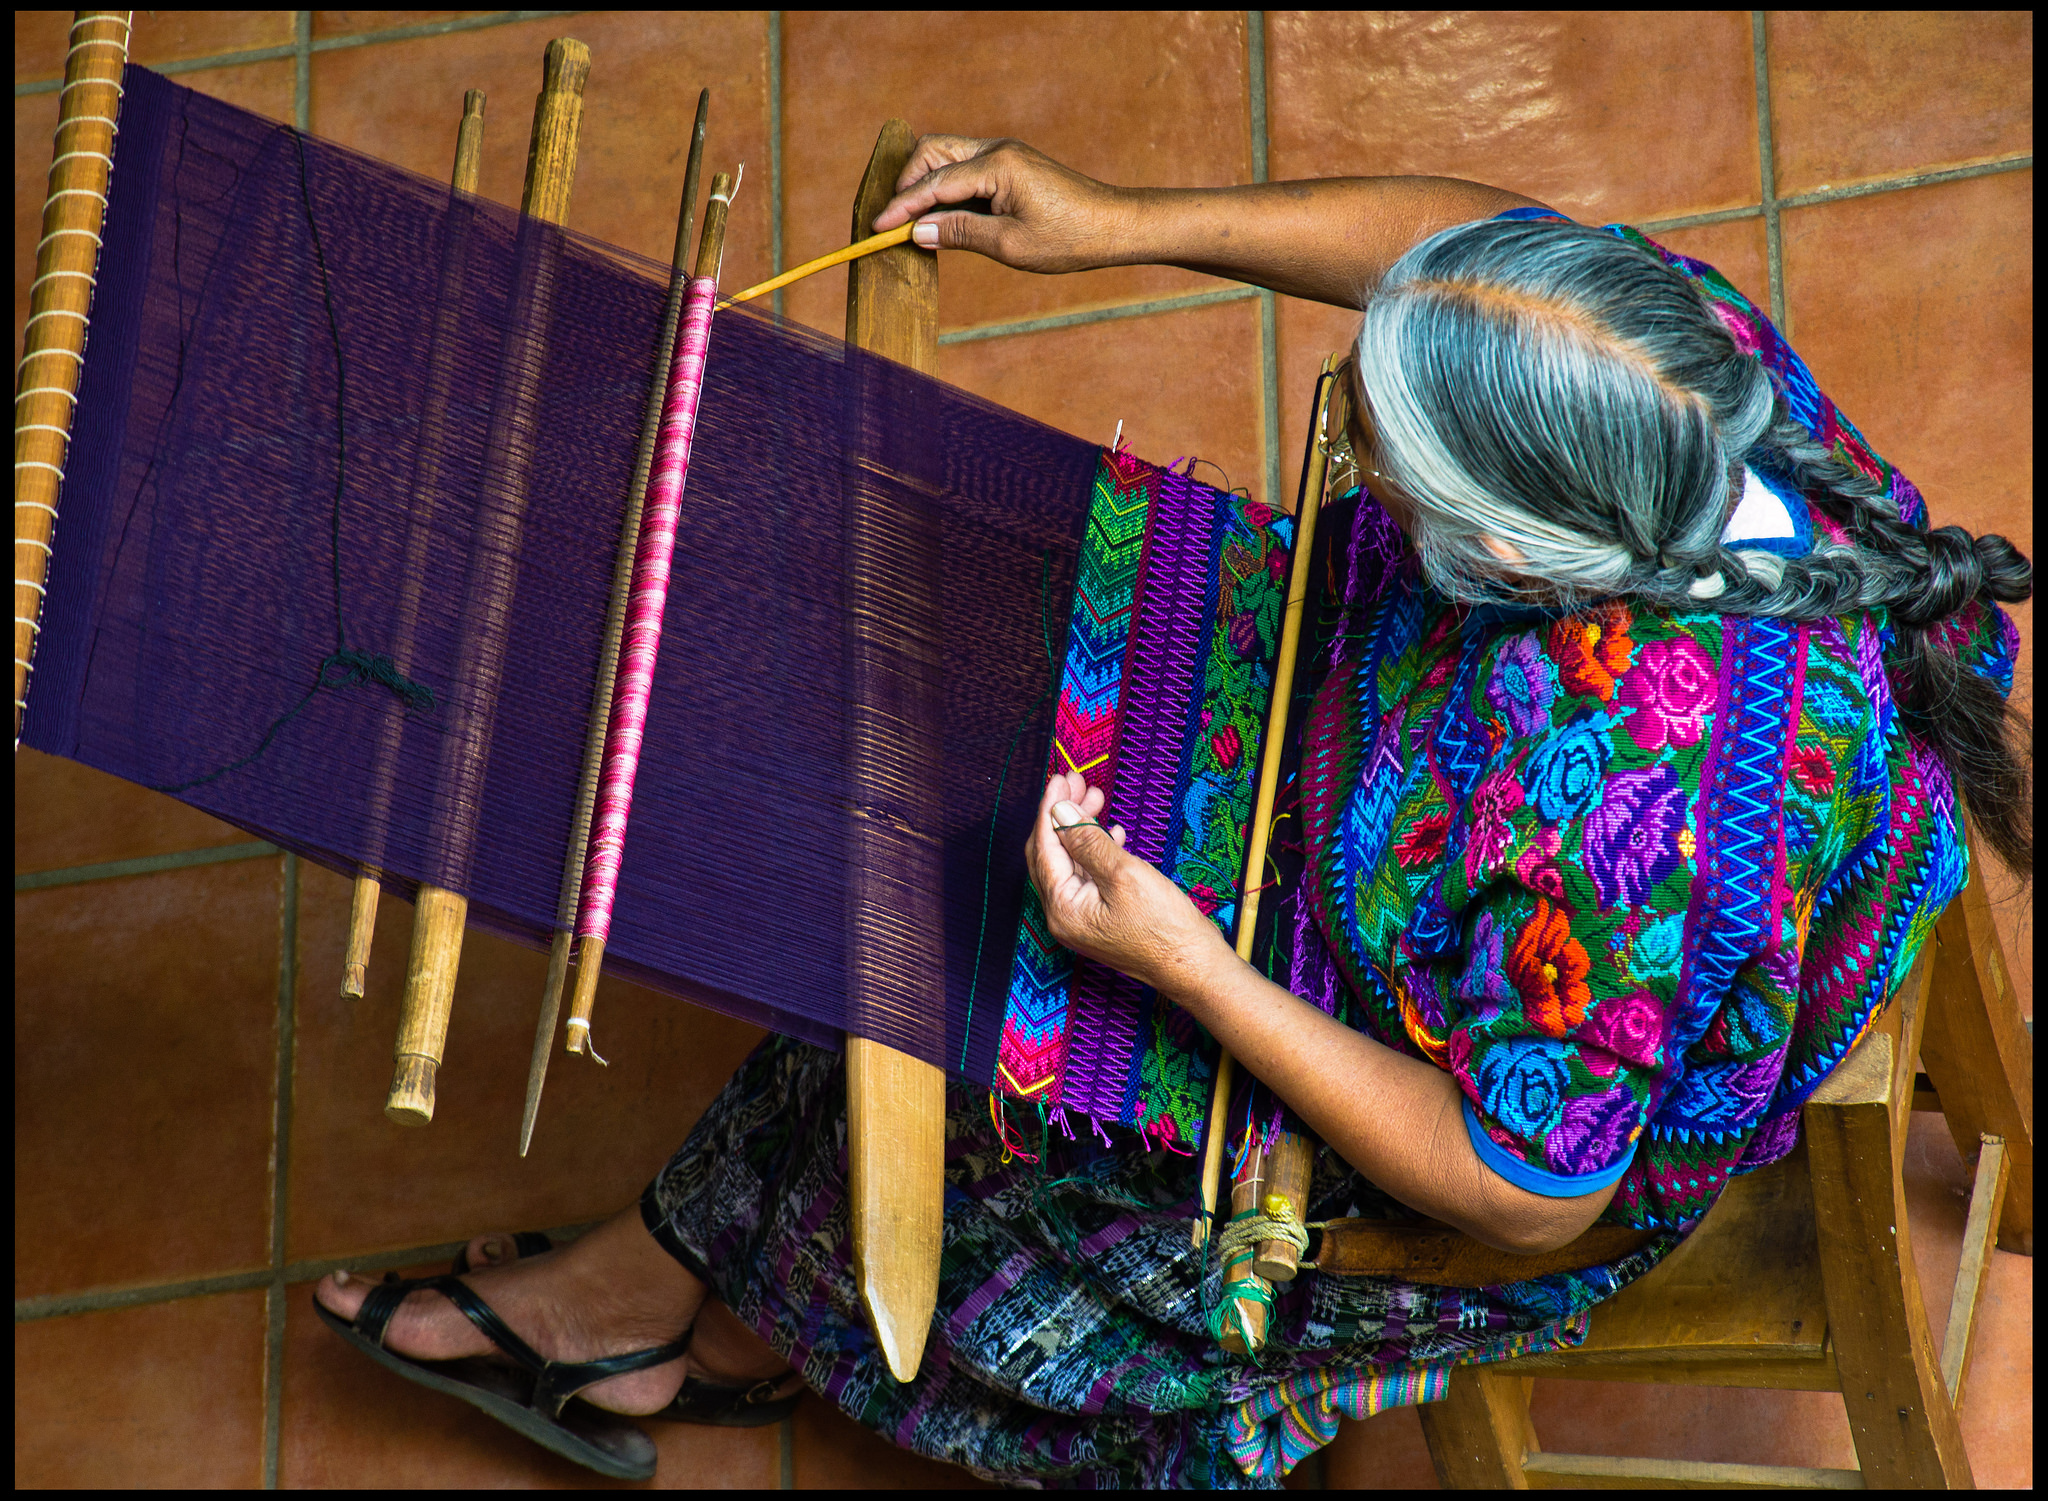 An artisan woman creating a huipil | © Guillén Pérez/Flickr